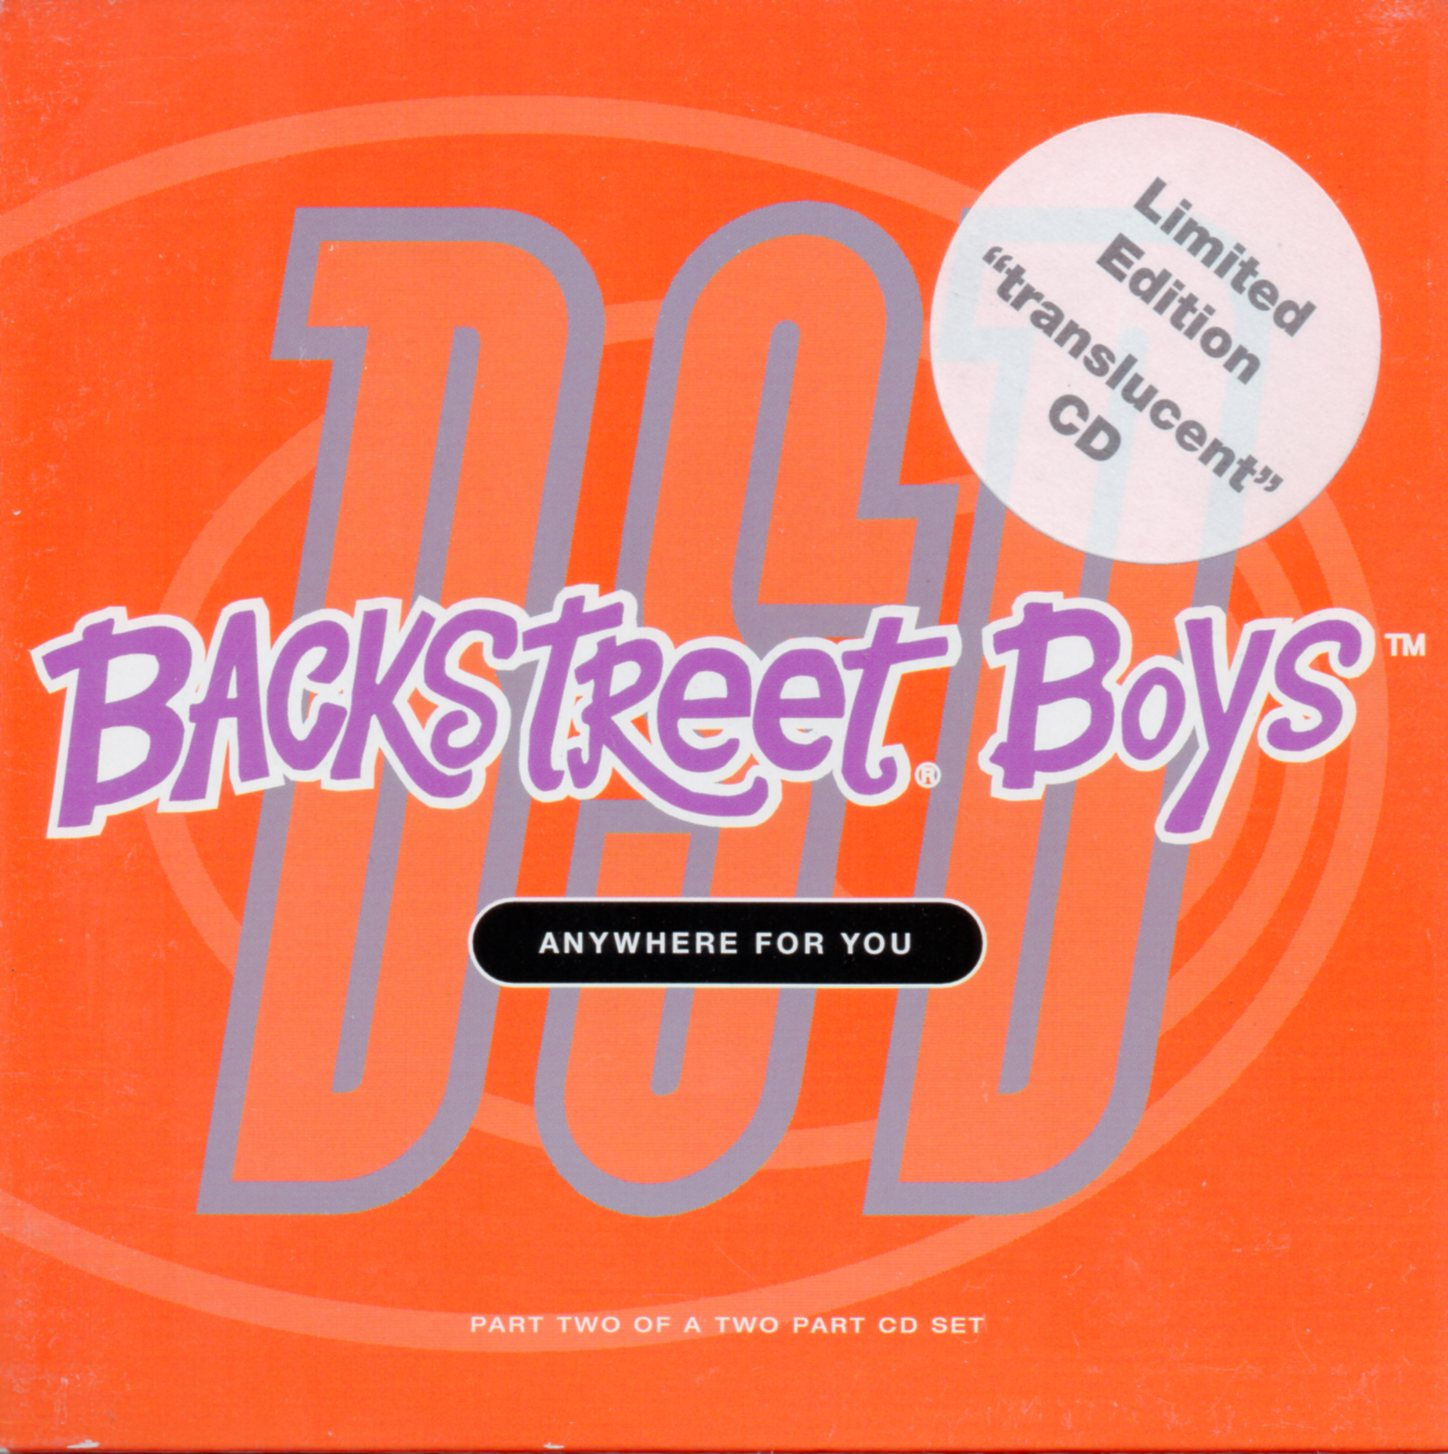 BACKSTREET BOYS - Anywhere For You - Limited edition translucent CD 3-track CARD SLEEVE - CD single